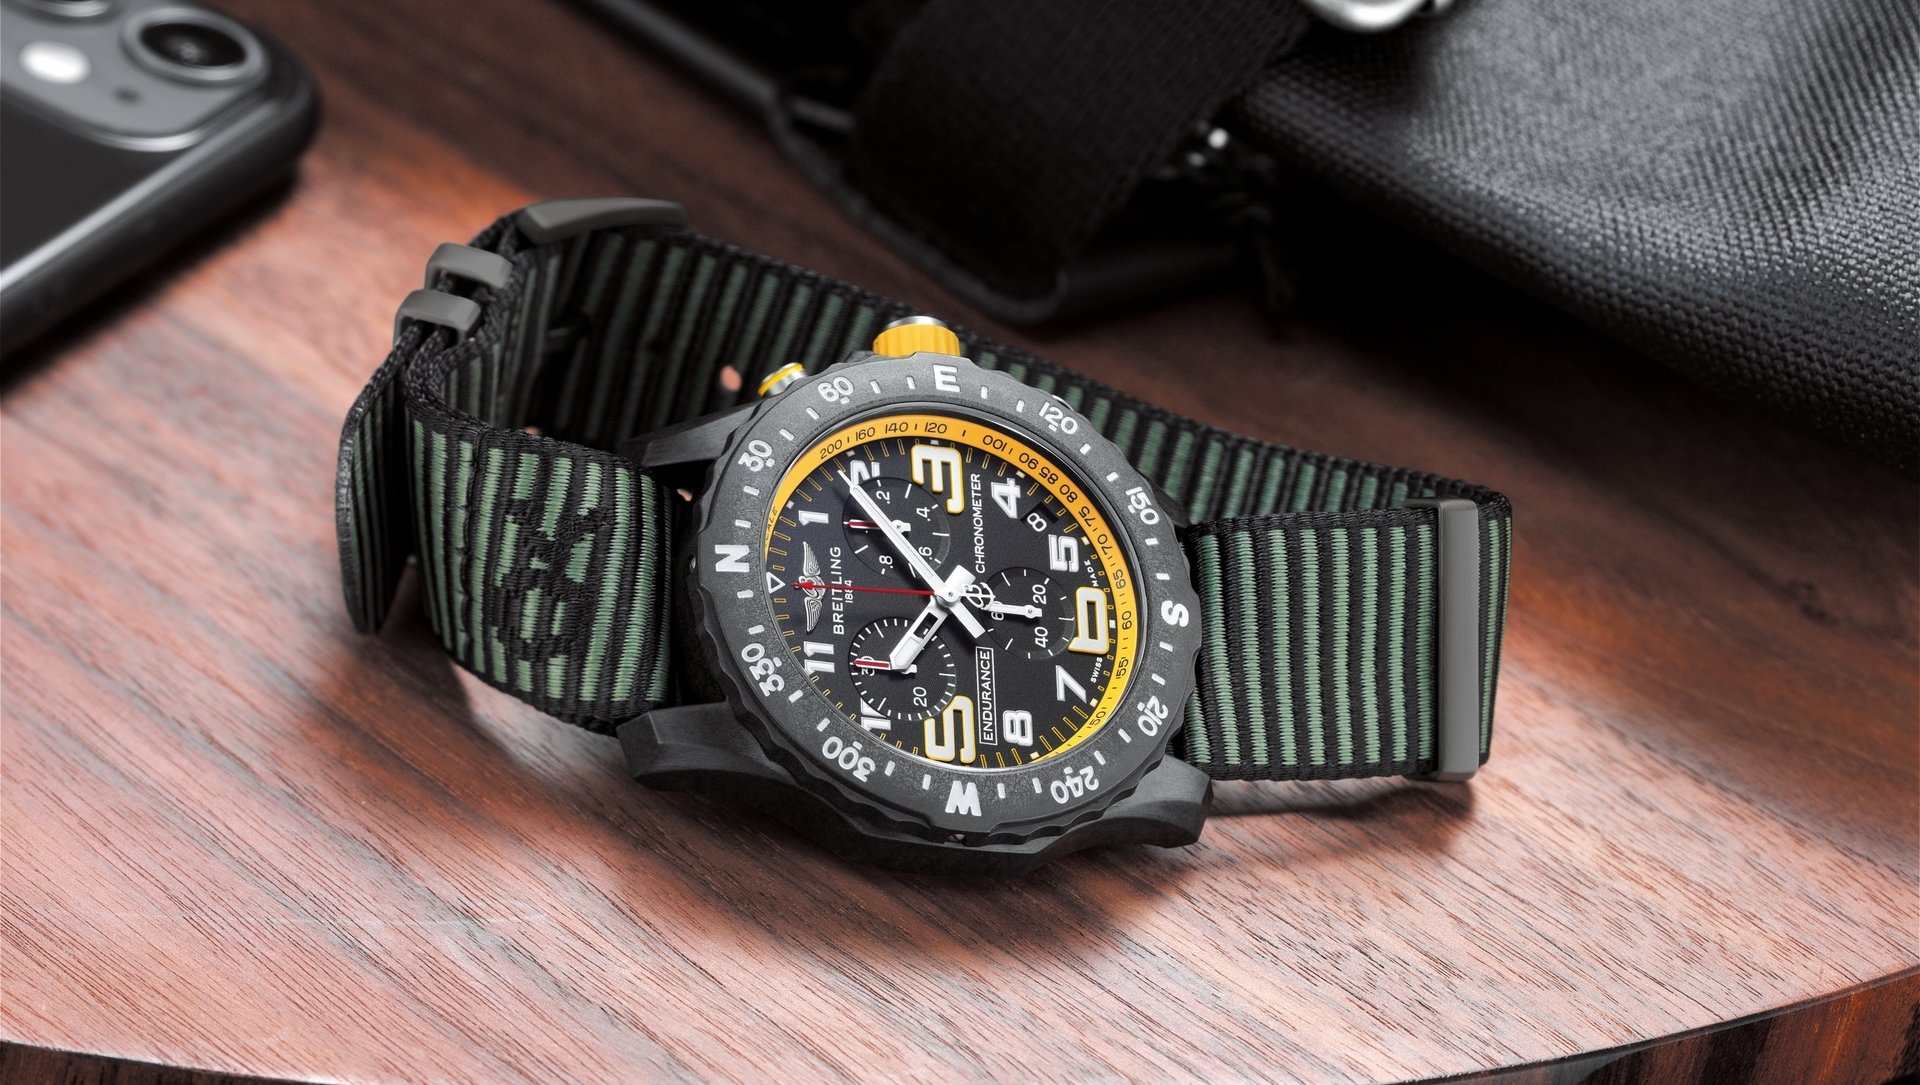 06_endurance-pro-with-a-yellow-inner-bezel-and-green-outerknown-econyl-yarn-nato-strap.jpg